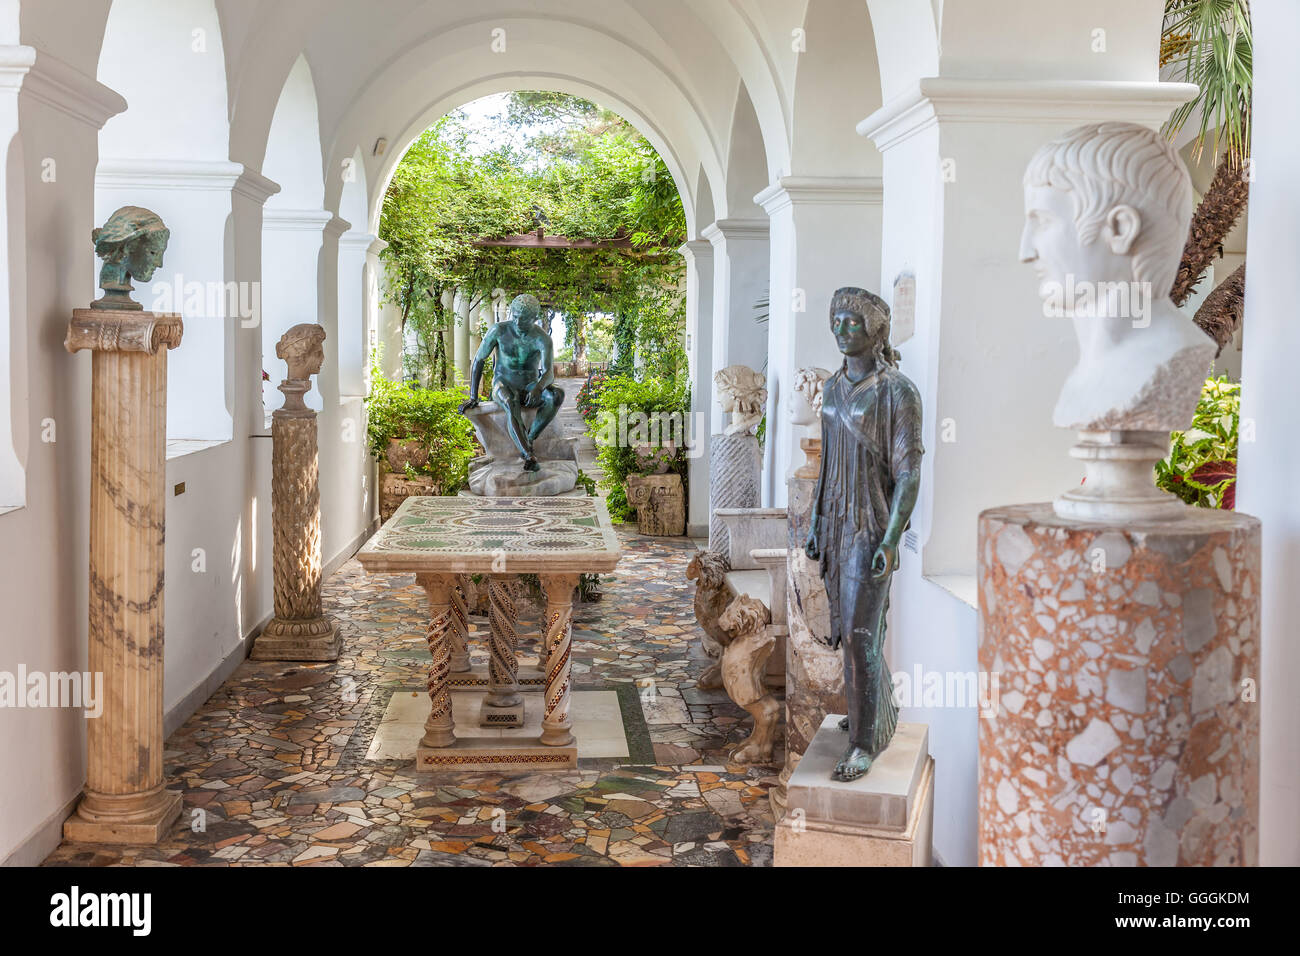 geography / travel, Italy, villa San Michele, Capri, Italy, Additional-Rights-Clearance-Info-Not-Available - Stock Image